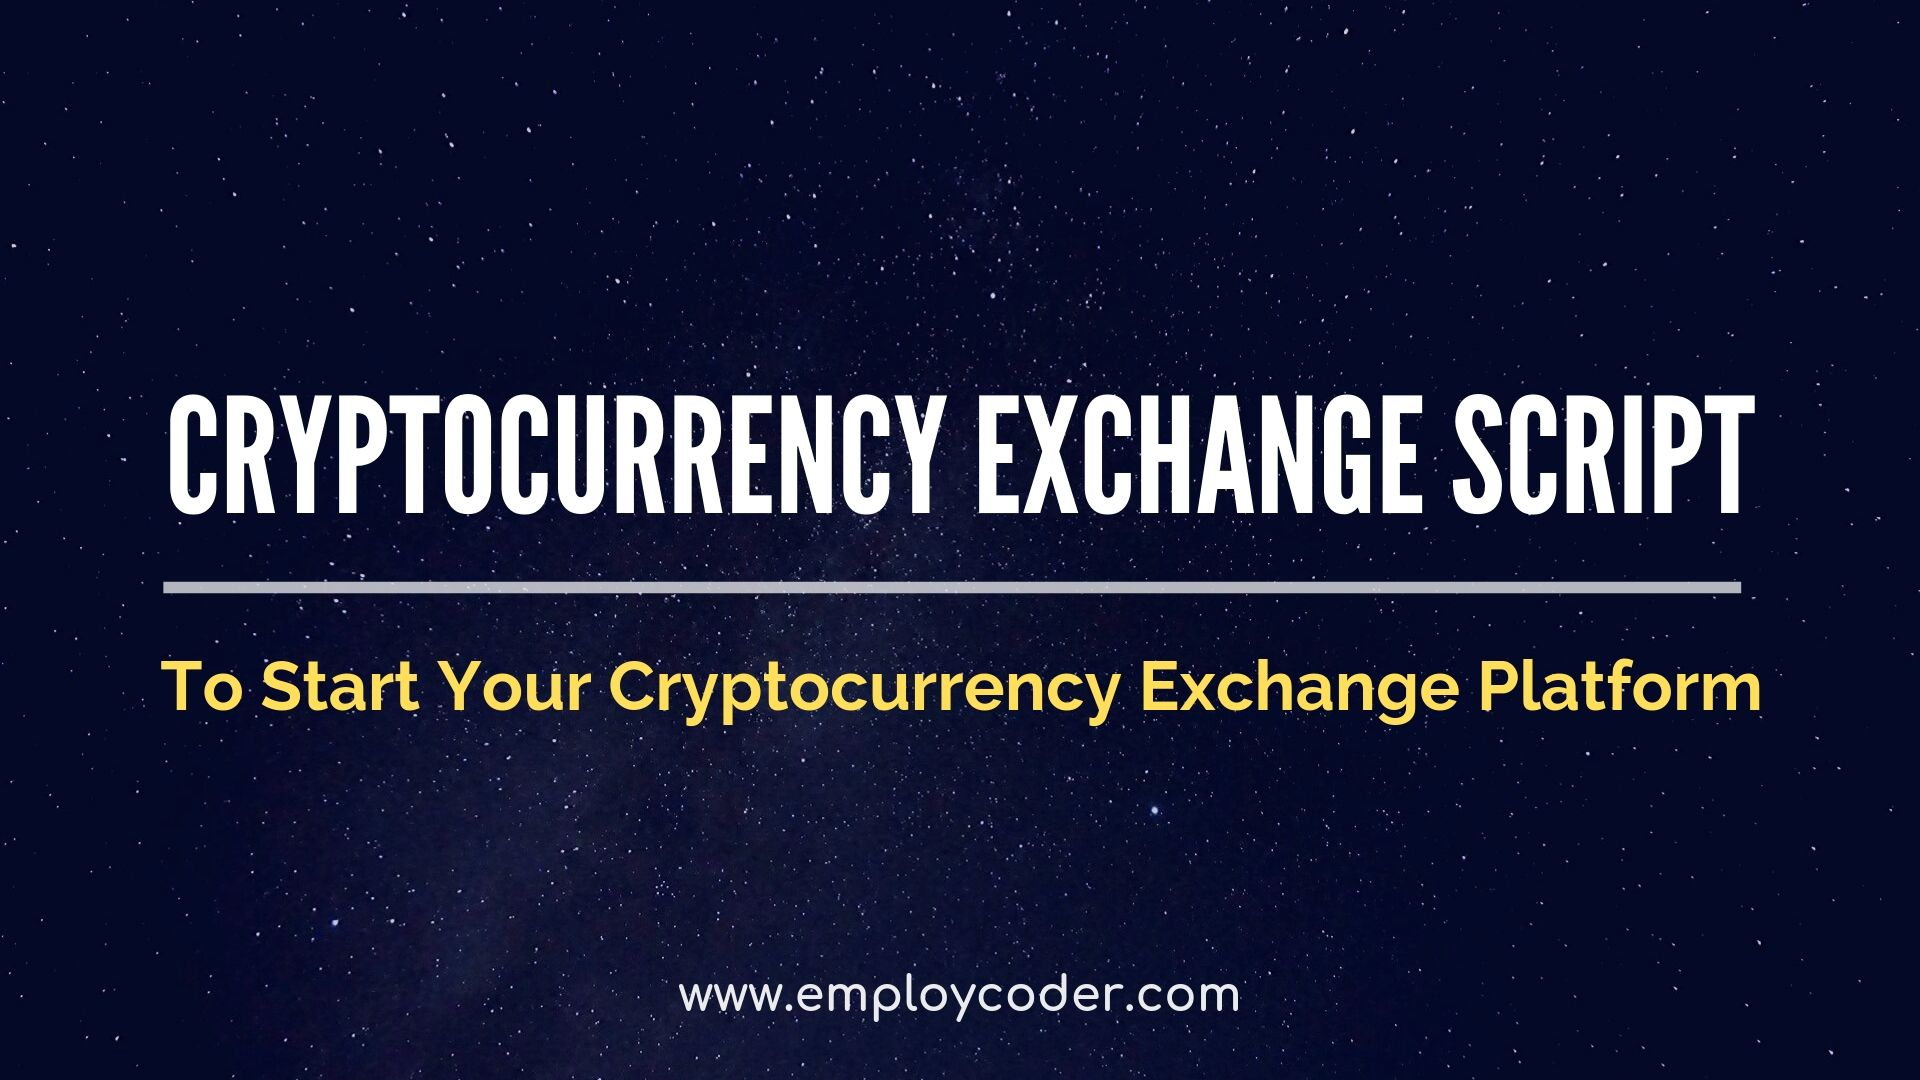 Start a Cryptocurrency Exchange Platform with Cryptocurrency Exchange Script